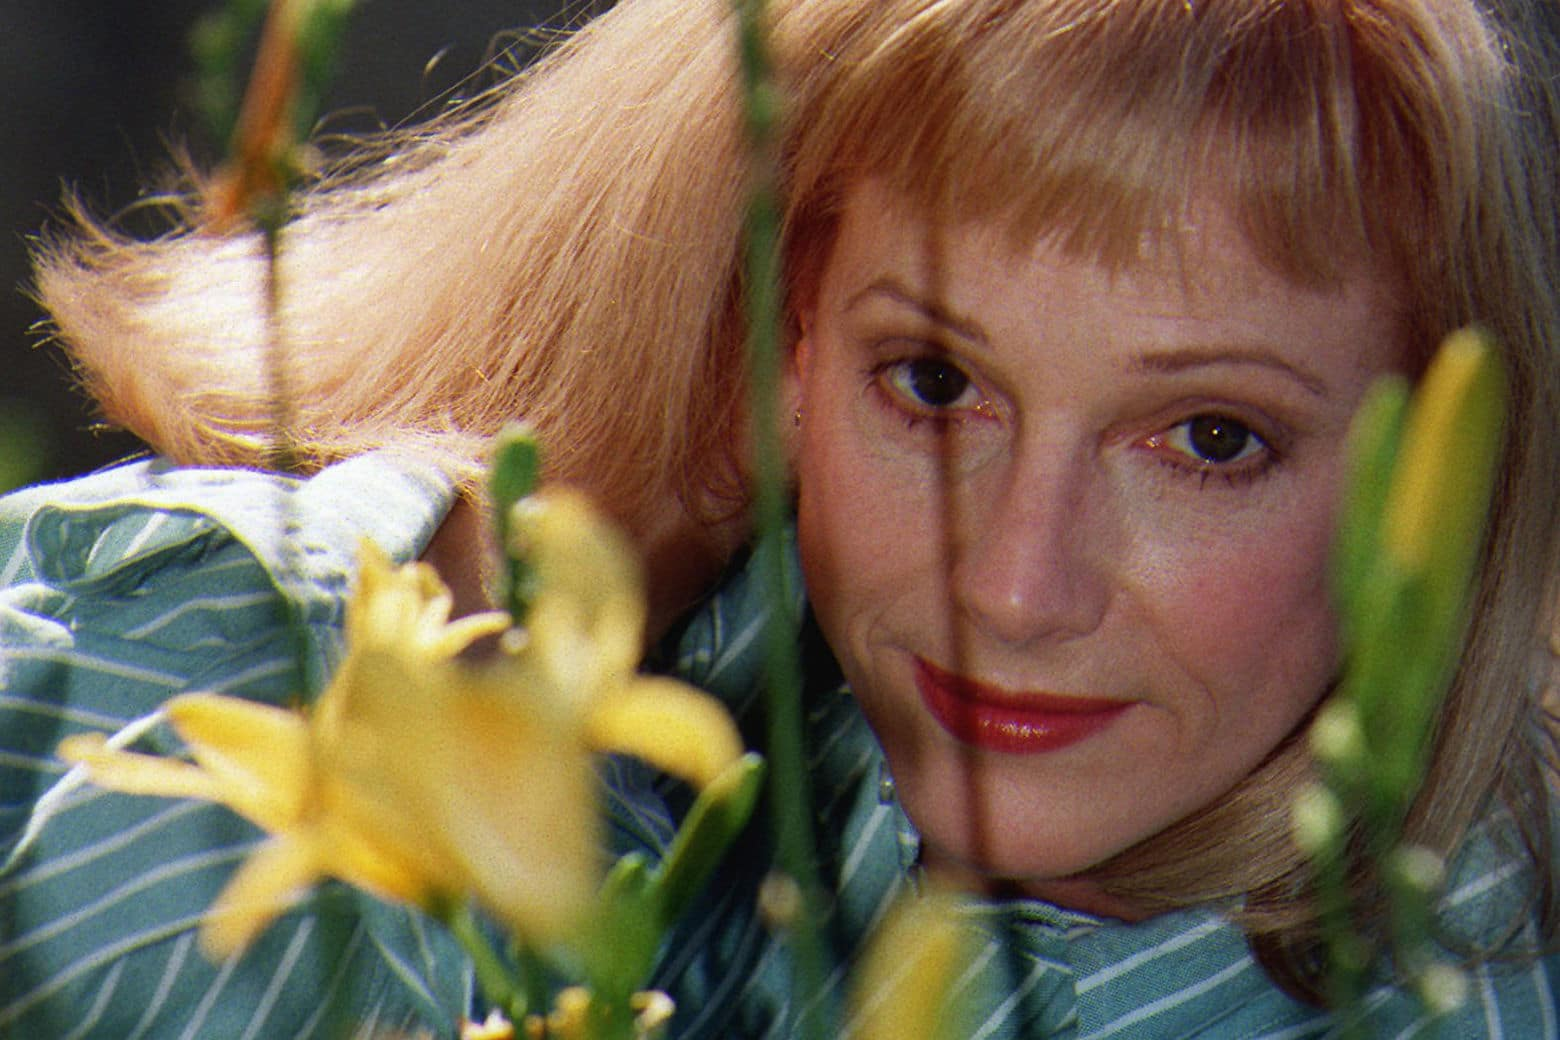 "FILE - In this Nov. 1, 1997 file photo, actress/director/author Sondra Locke poses for a photograph at a garden in Beverly Hills, Calif. A death certificate obtained by The Associated Press shows Oscar-nominated actress Locke died Nov. 3, 2018, at age 74 at her home in Los Angeles of cardiac arrest stemming from breast and bone cancer. She was nominated for an Academy Award for best supporting actress for 1968's ""The Heart is a Lonely Hunter,"" her first film. (AP Photo/ Damian Dovarganes, File)"